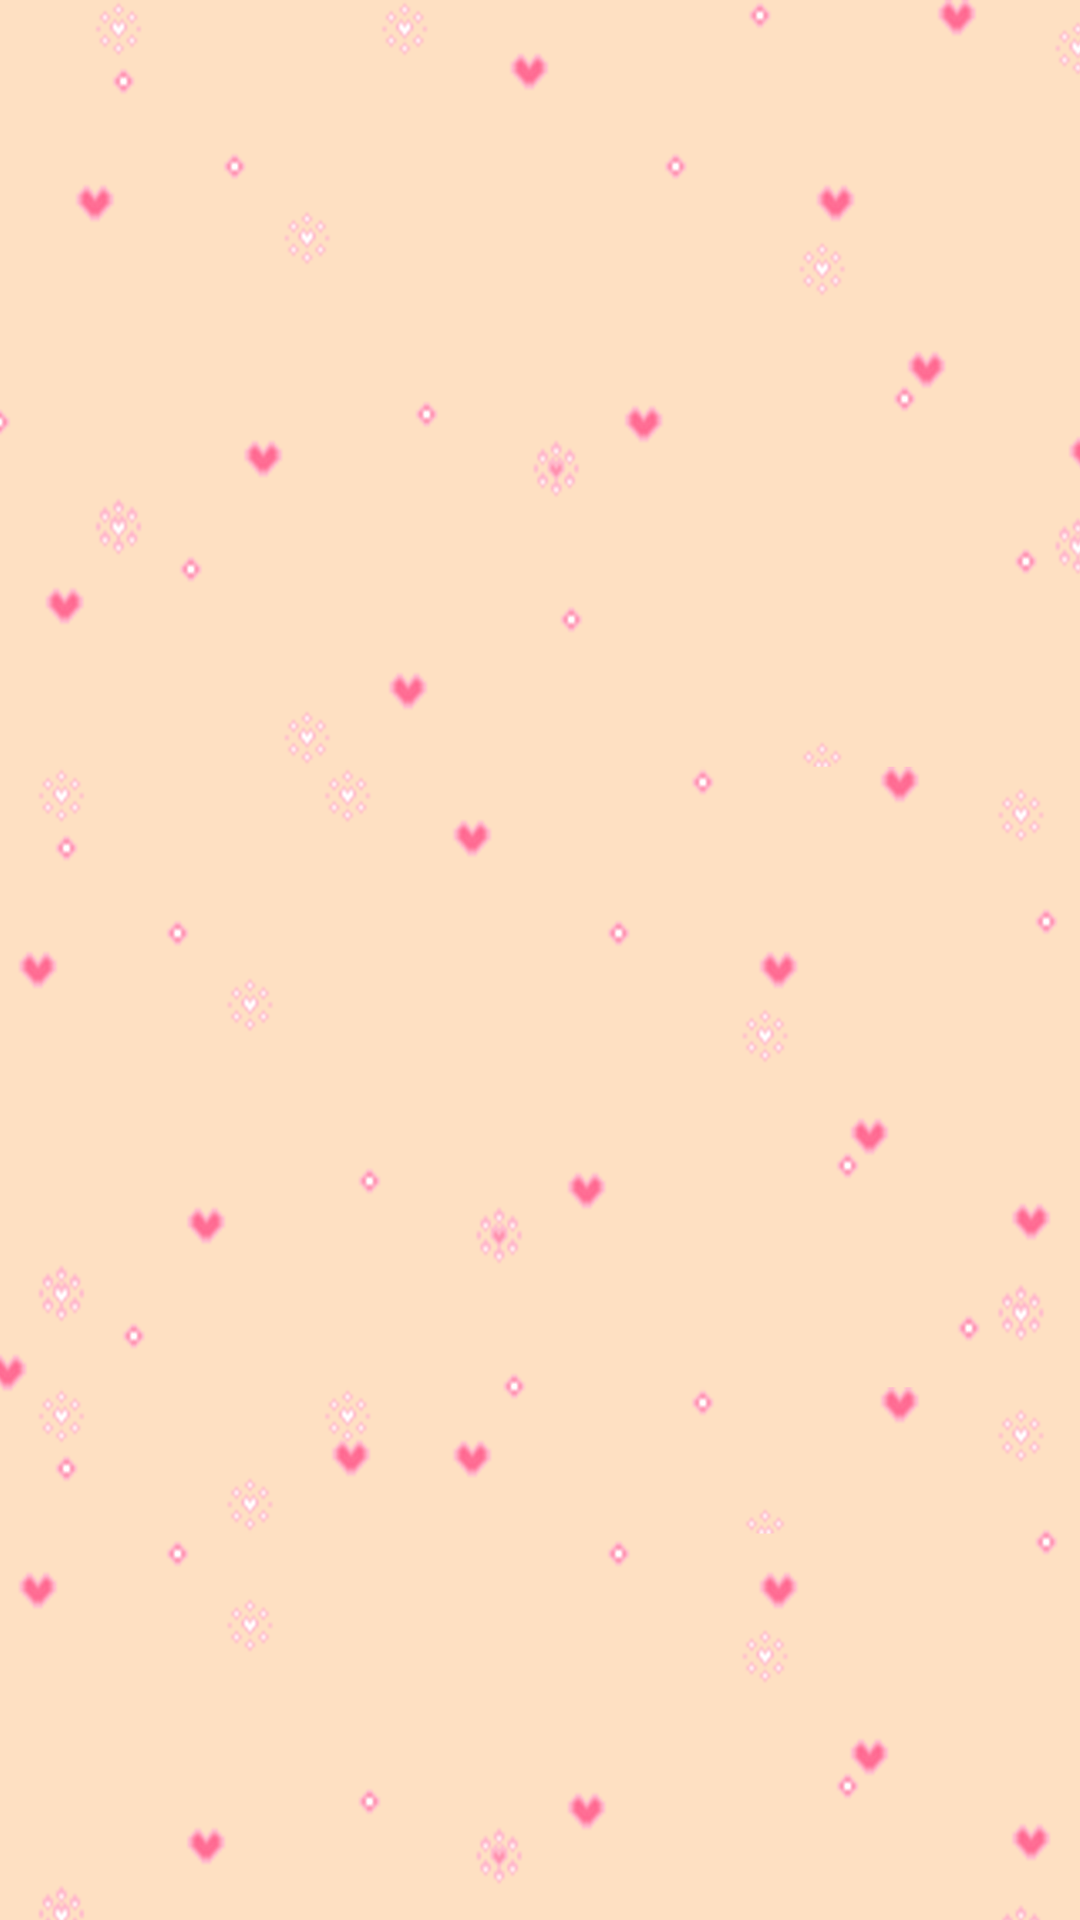 Peach Aesthetic Wallpapers Top Free Peach Aesthetic